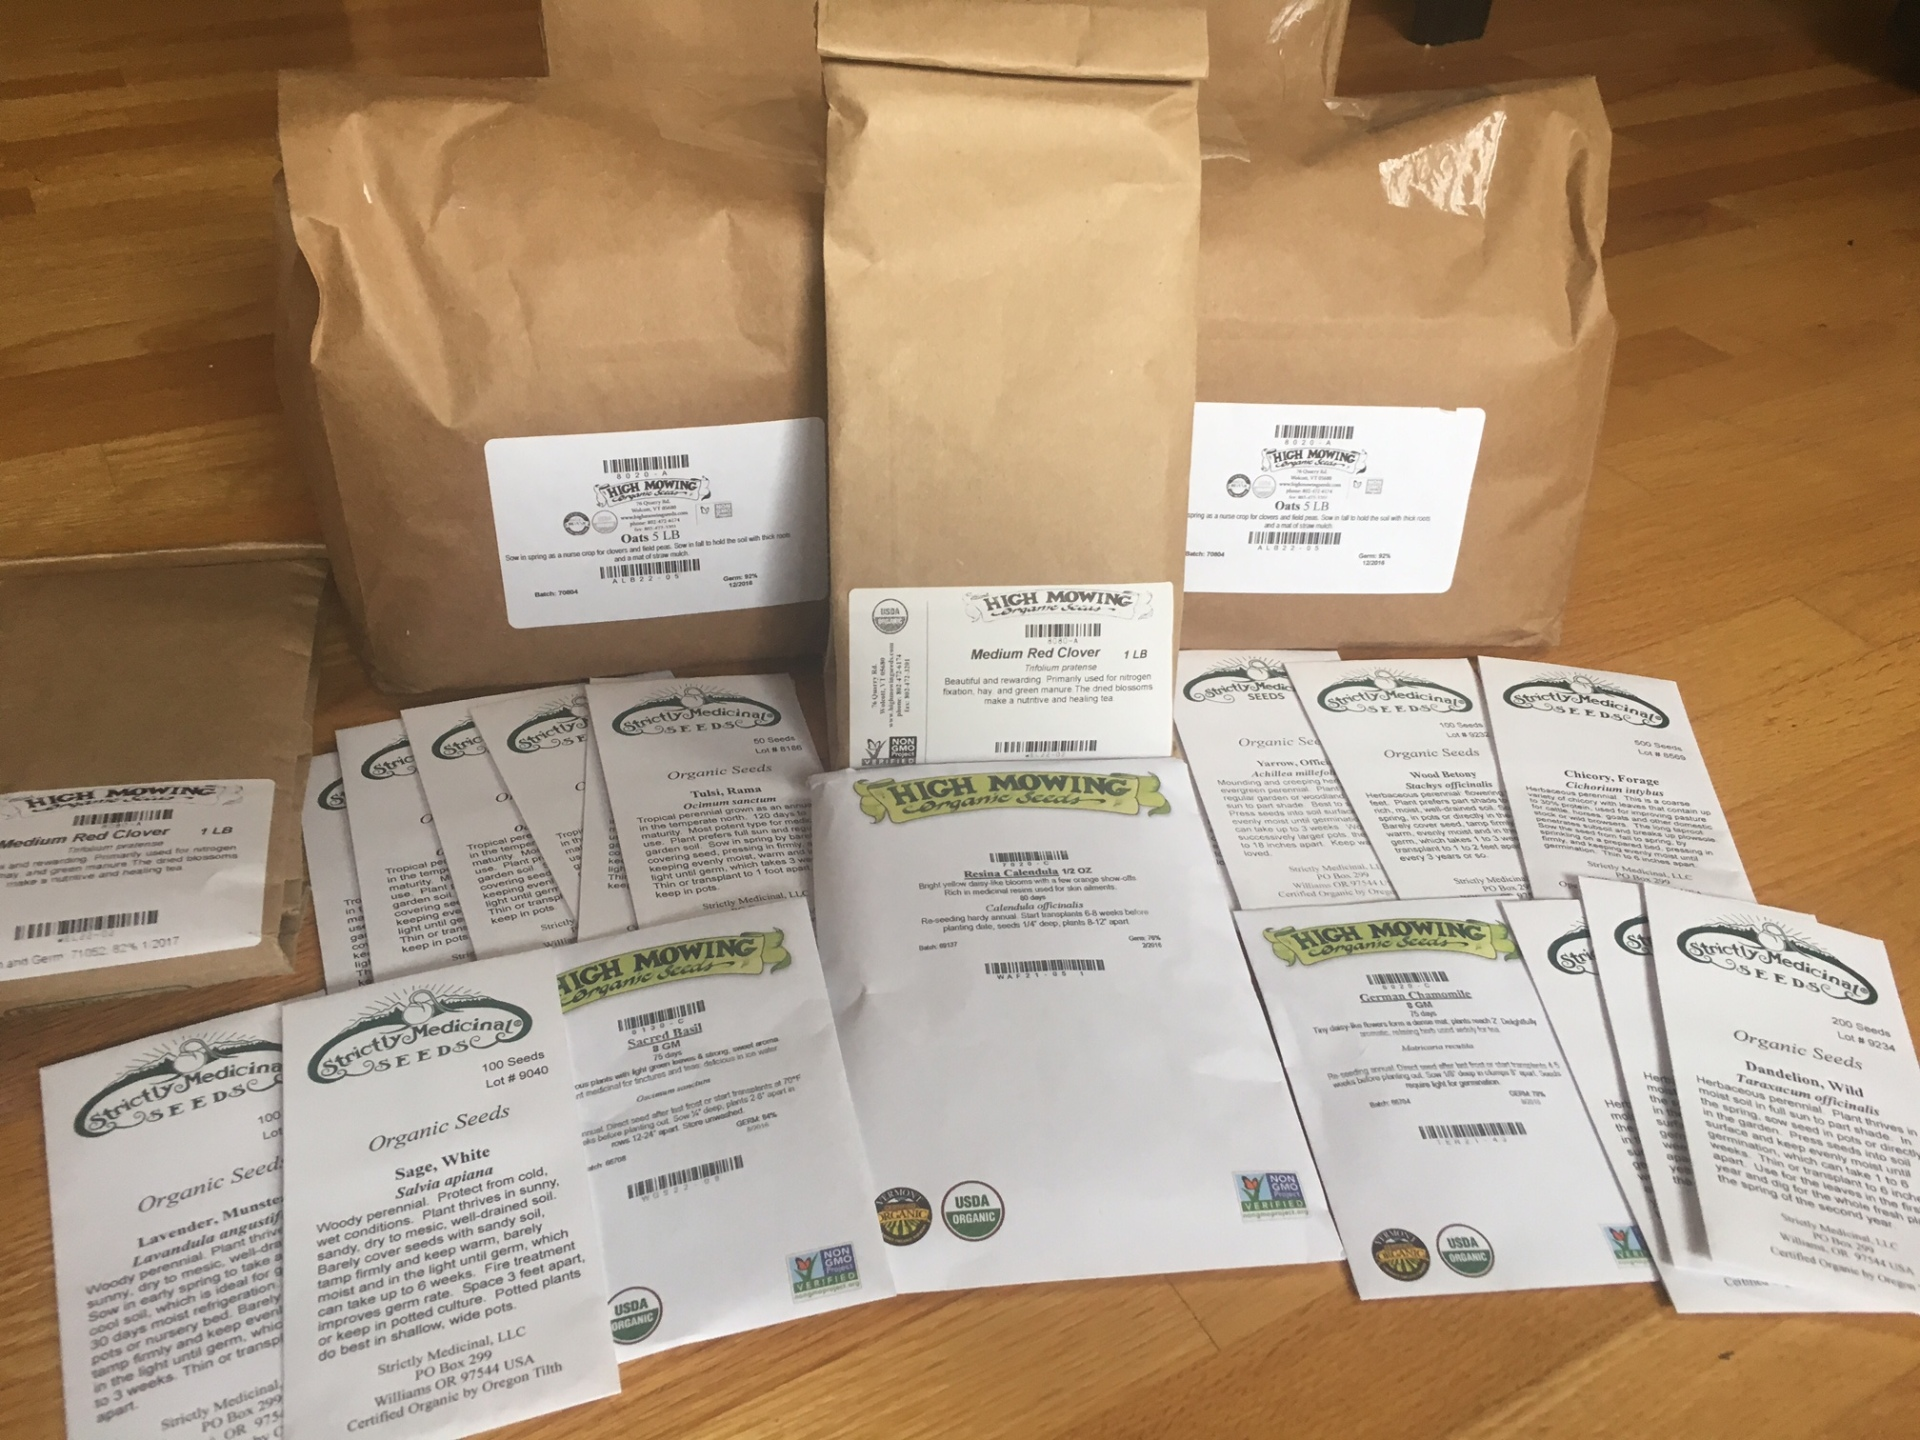 3/27/17: Seeds have started to arrive!